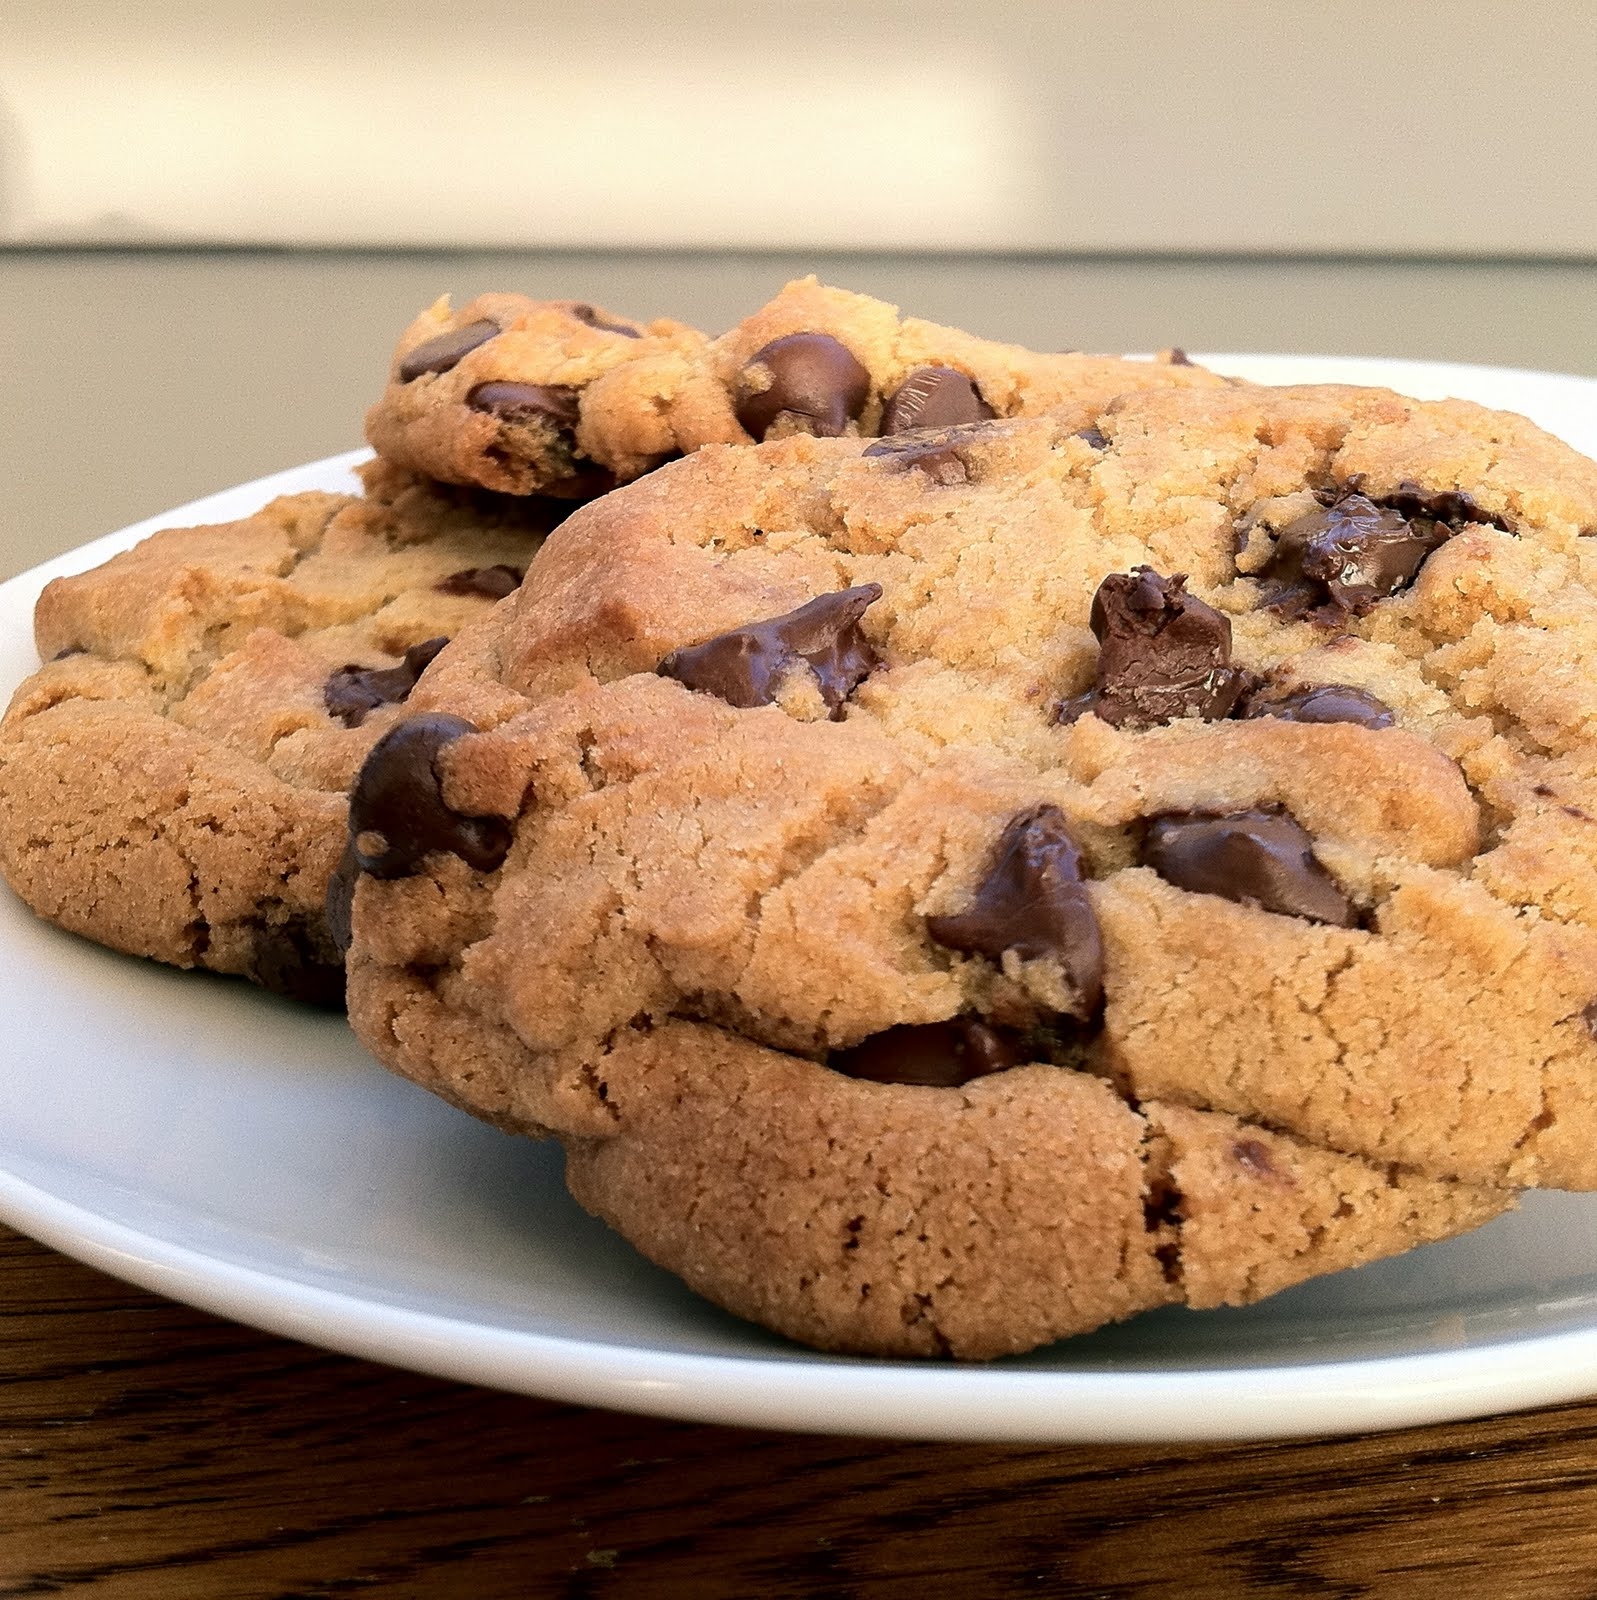 ever xxl m m chocolate chip cookies best chocolate chip cookies ...